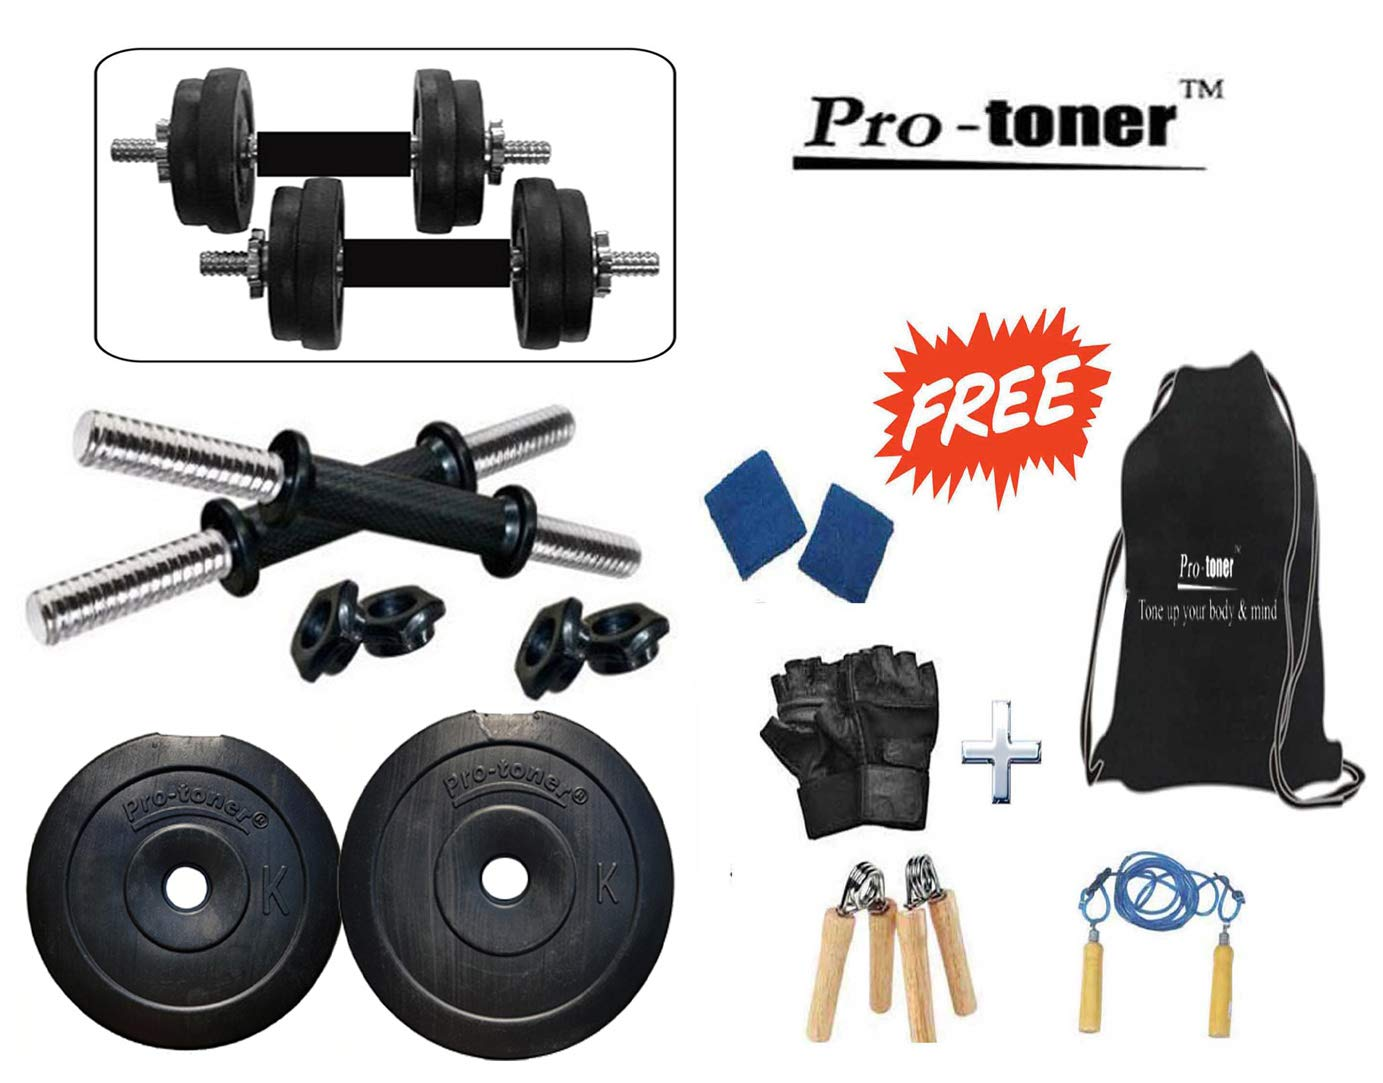 Protoner Adjustable 10kg Dumbbells